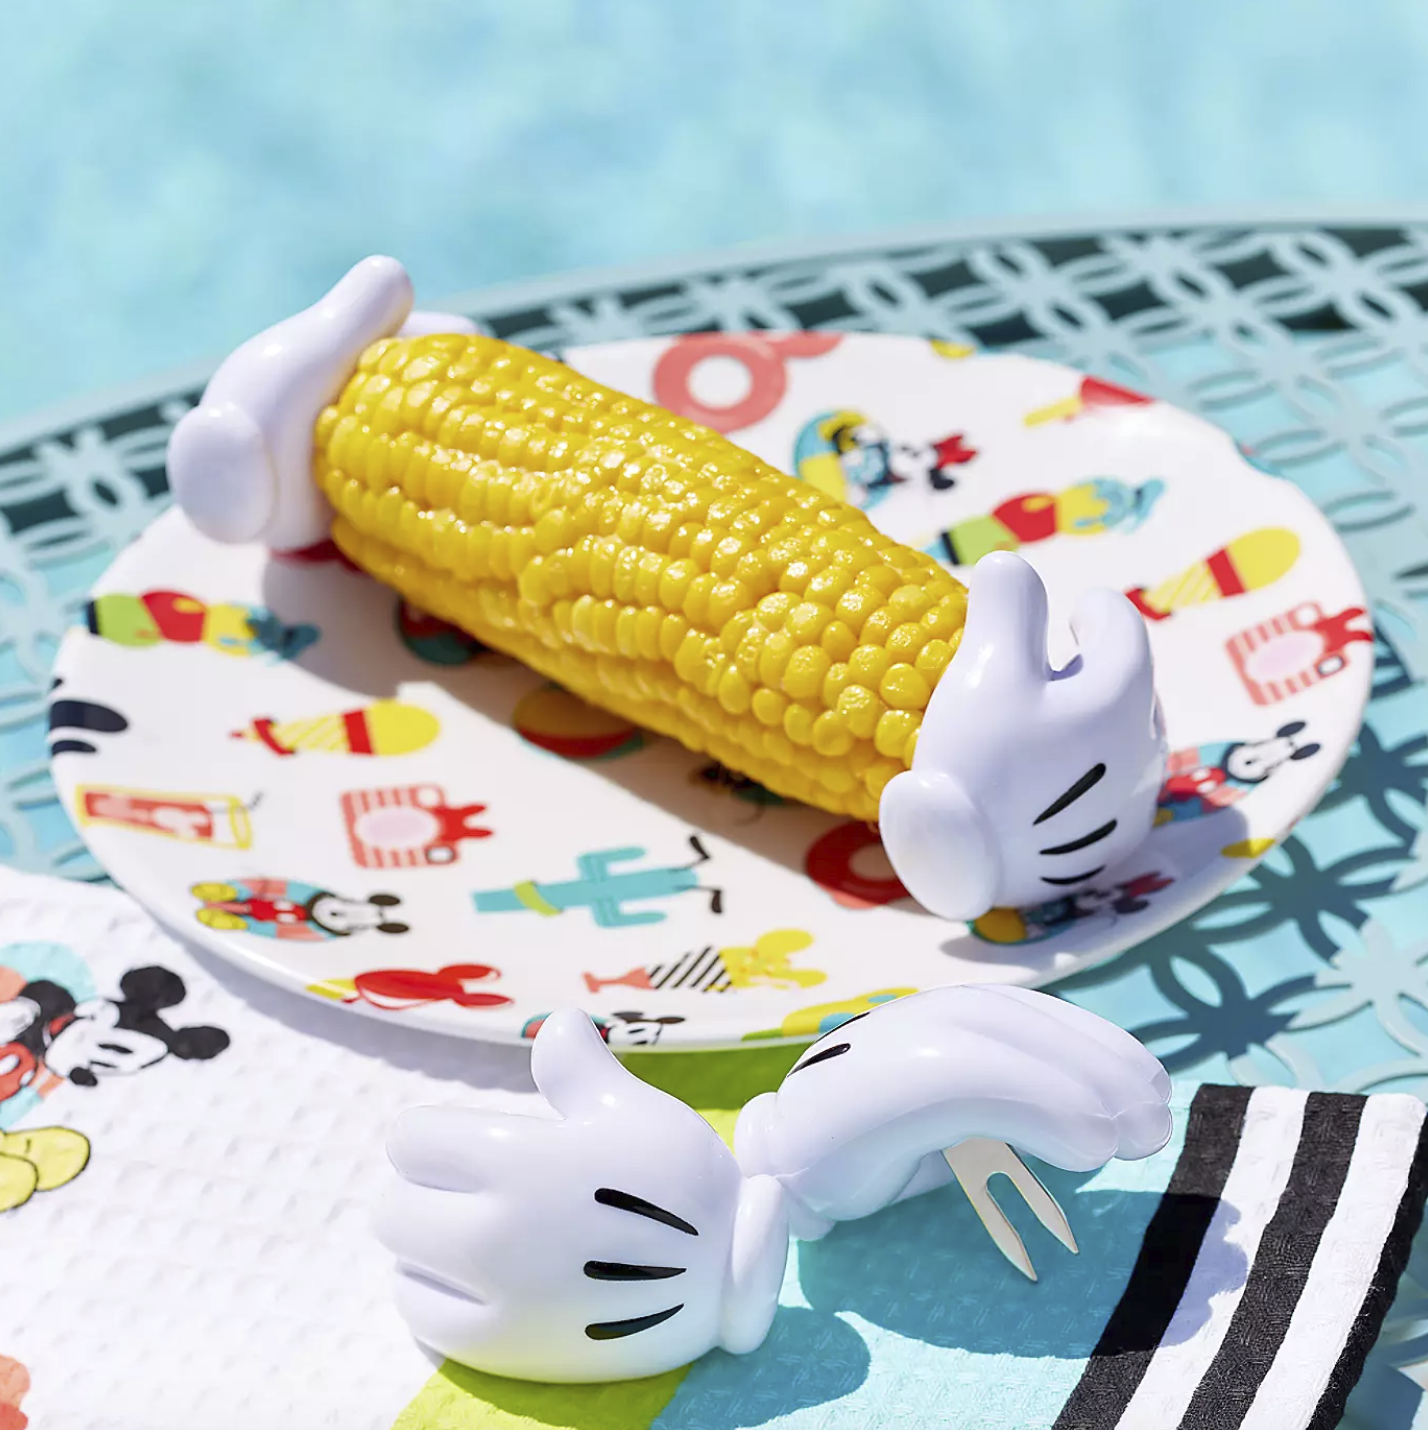 two corn holders attached to both ends of an ear of corn on a plate and two additional holders sitting beside the plate